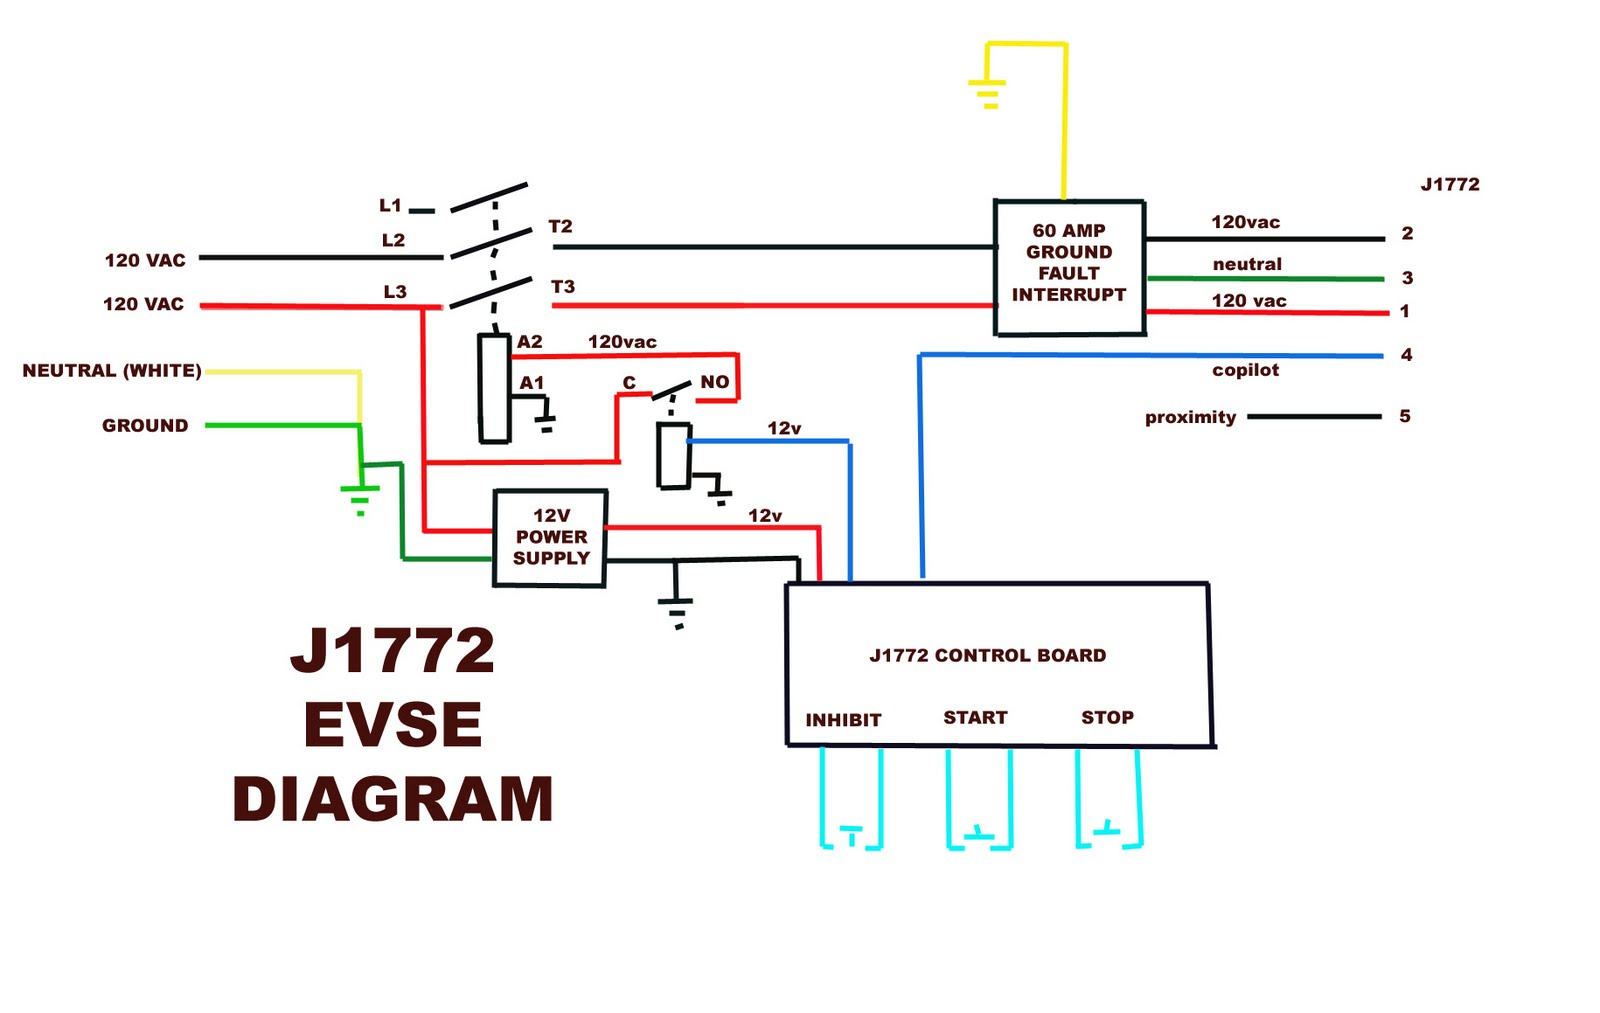 Duplex light switch wiring diagram 17 3-Way Outlet Wiring Diagram Float Switch Wiring Diagram Single Light Switch Wiring Diagram